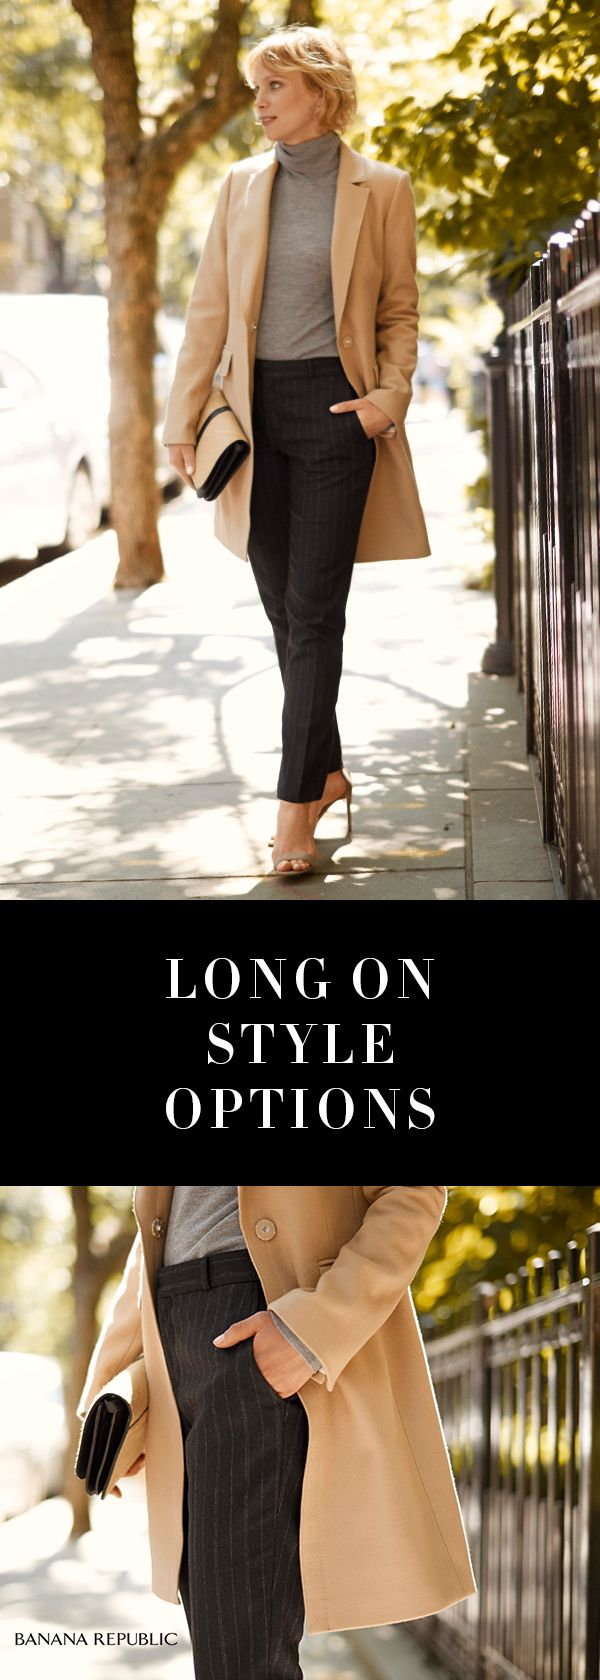 The perfectly proportioned camel blazer. Long on style, versatility & impeccable quality. Top denim, suit pants or a pencil skirt for a chic work & well-beyond option. Your new classic. Ready to layer and live in.